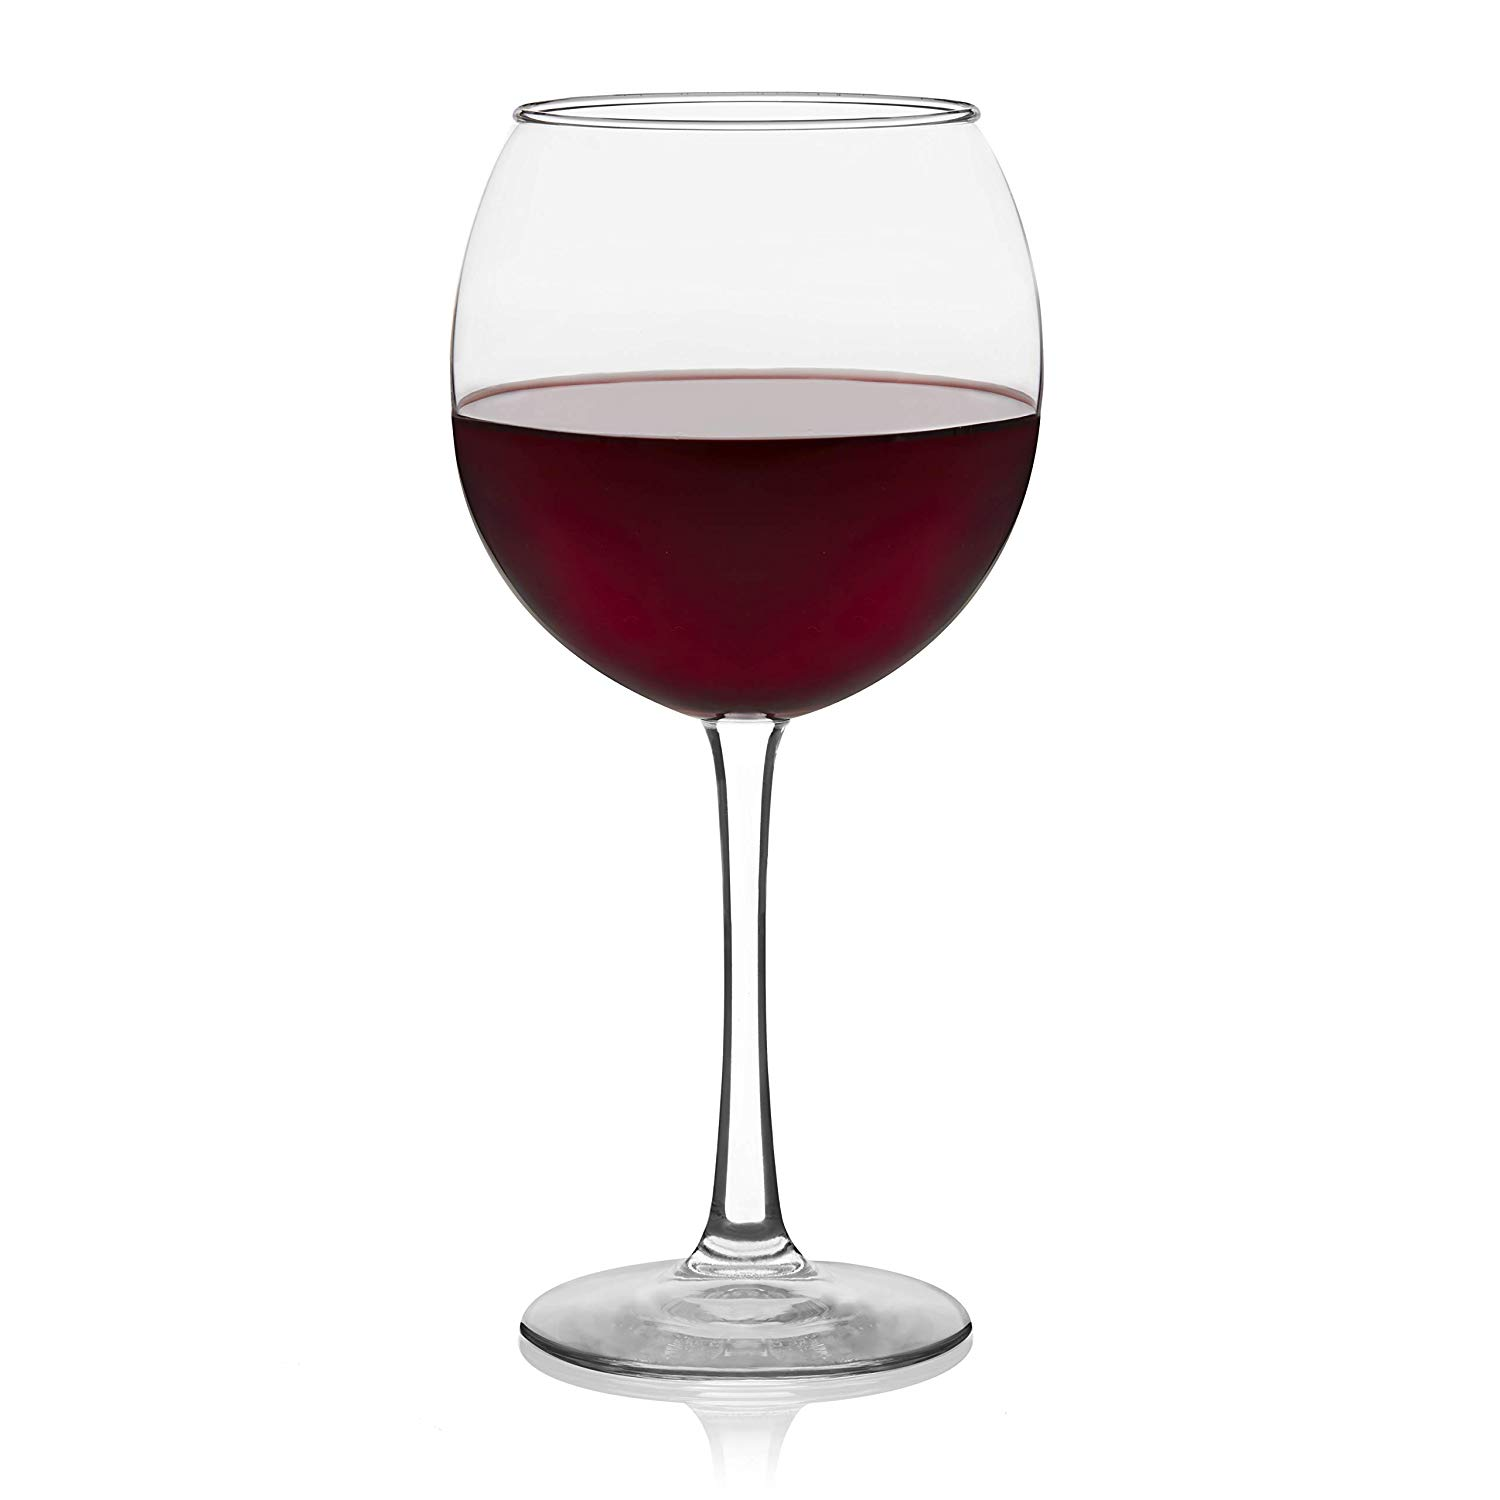 Libbey Vina Red Wine Glasses, Set of 6 - Deep-bowled balloon design allows gentle swirling and enhances aroma and flavor profile for the ideal red wine glass, perfect for hosting discerning guests or just enjoying a little